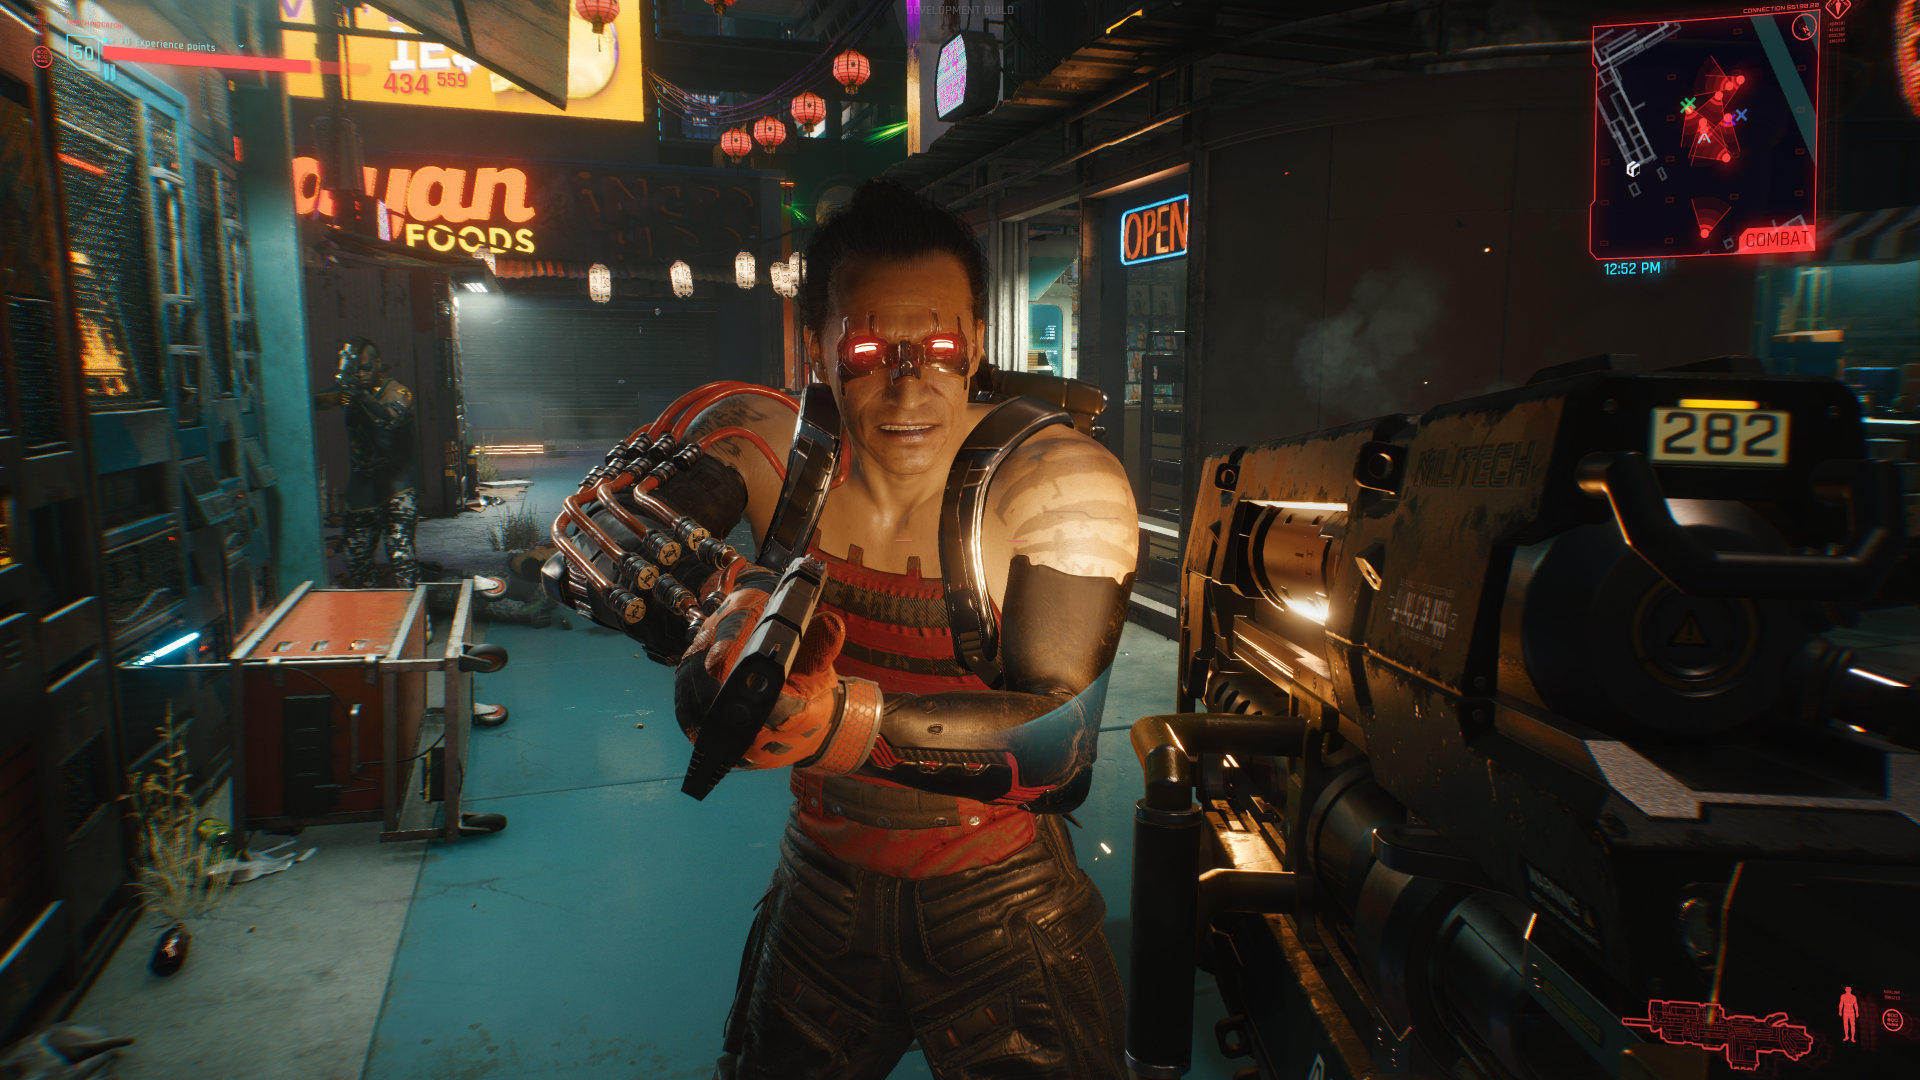 Quelle: CPR - Cyberpunk 2077 - Angriff in Chinatown